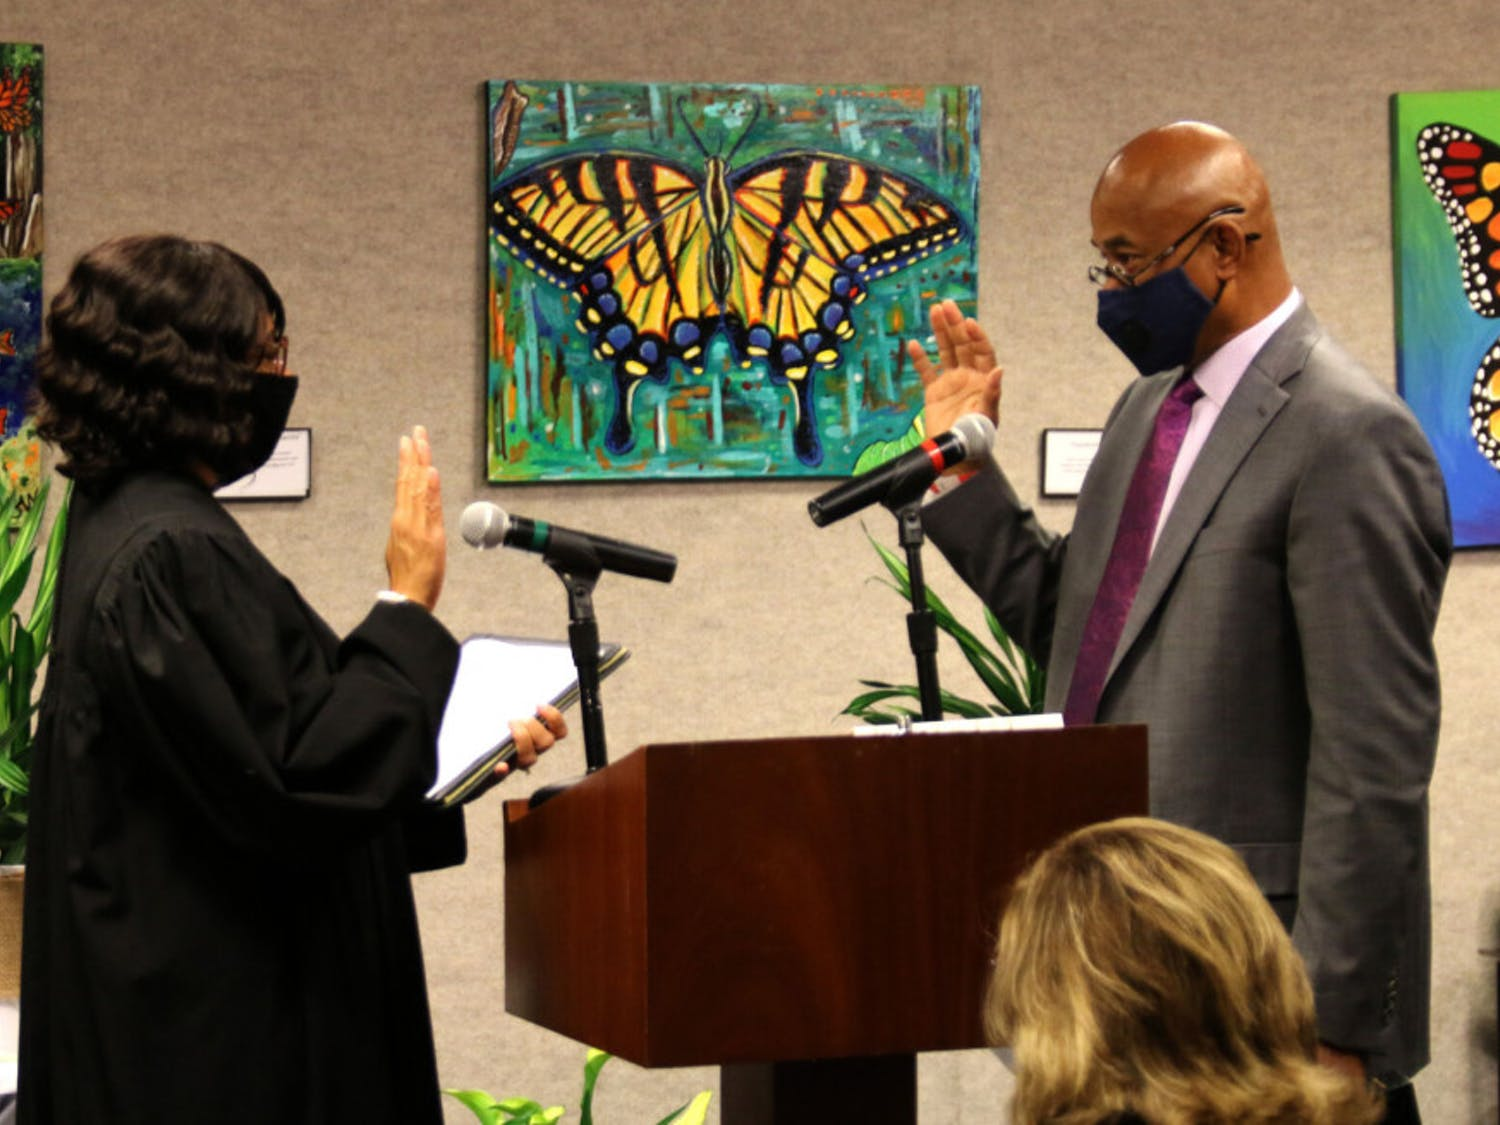 """Judge Meshon Rawls (left) swears in Charles Chestnut IV (right), for his third term as an Alachua County Commissioner, serving District 5, at the John R. """"Jack"""" Durrance Auditorium on Nov. 17, 2020."""